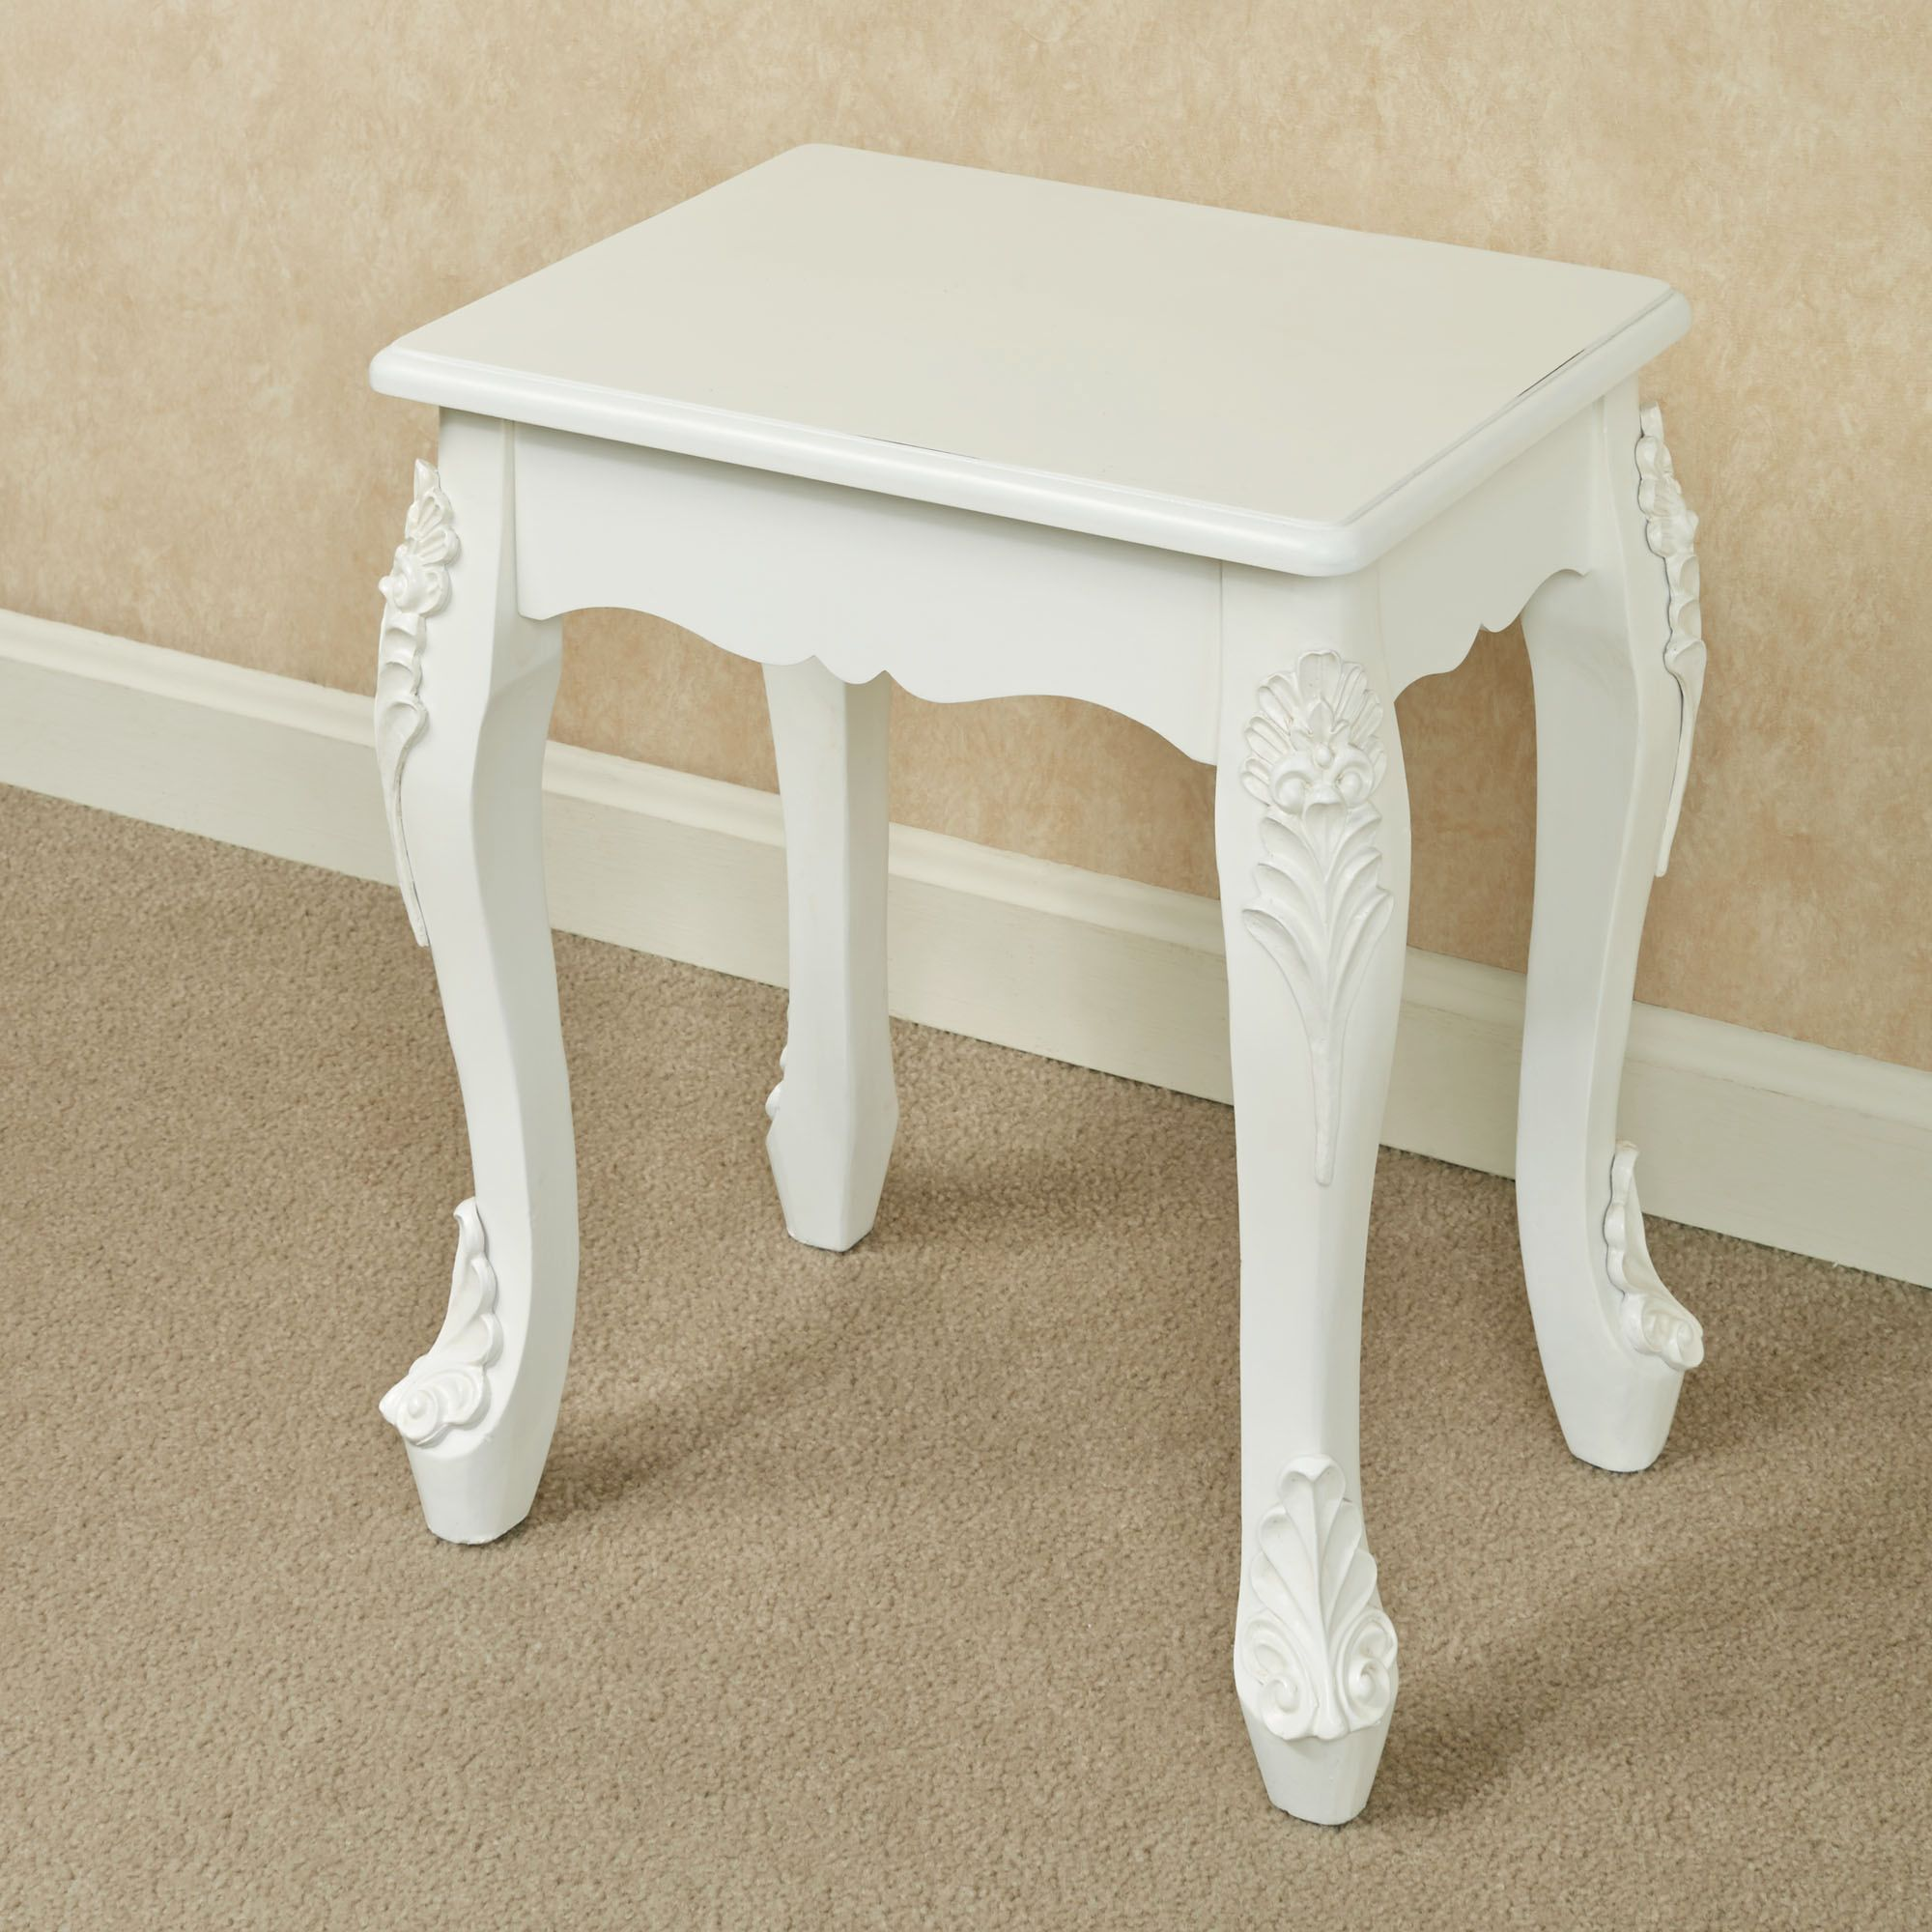 More Designs Of Vanity Bench Seat For Bedroom Vanity Homesfeed